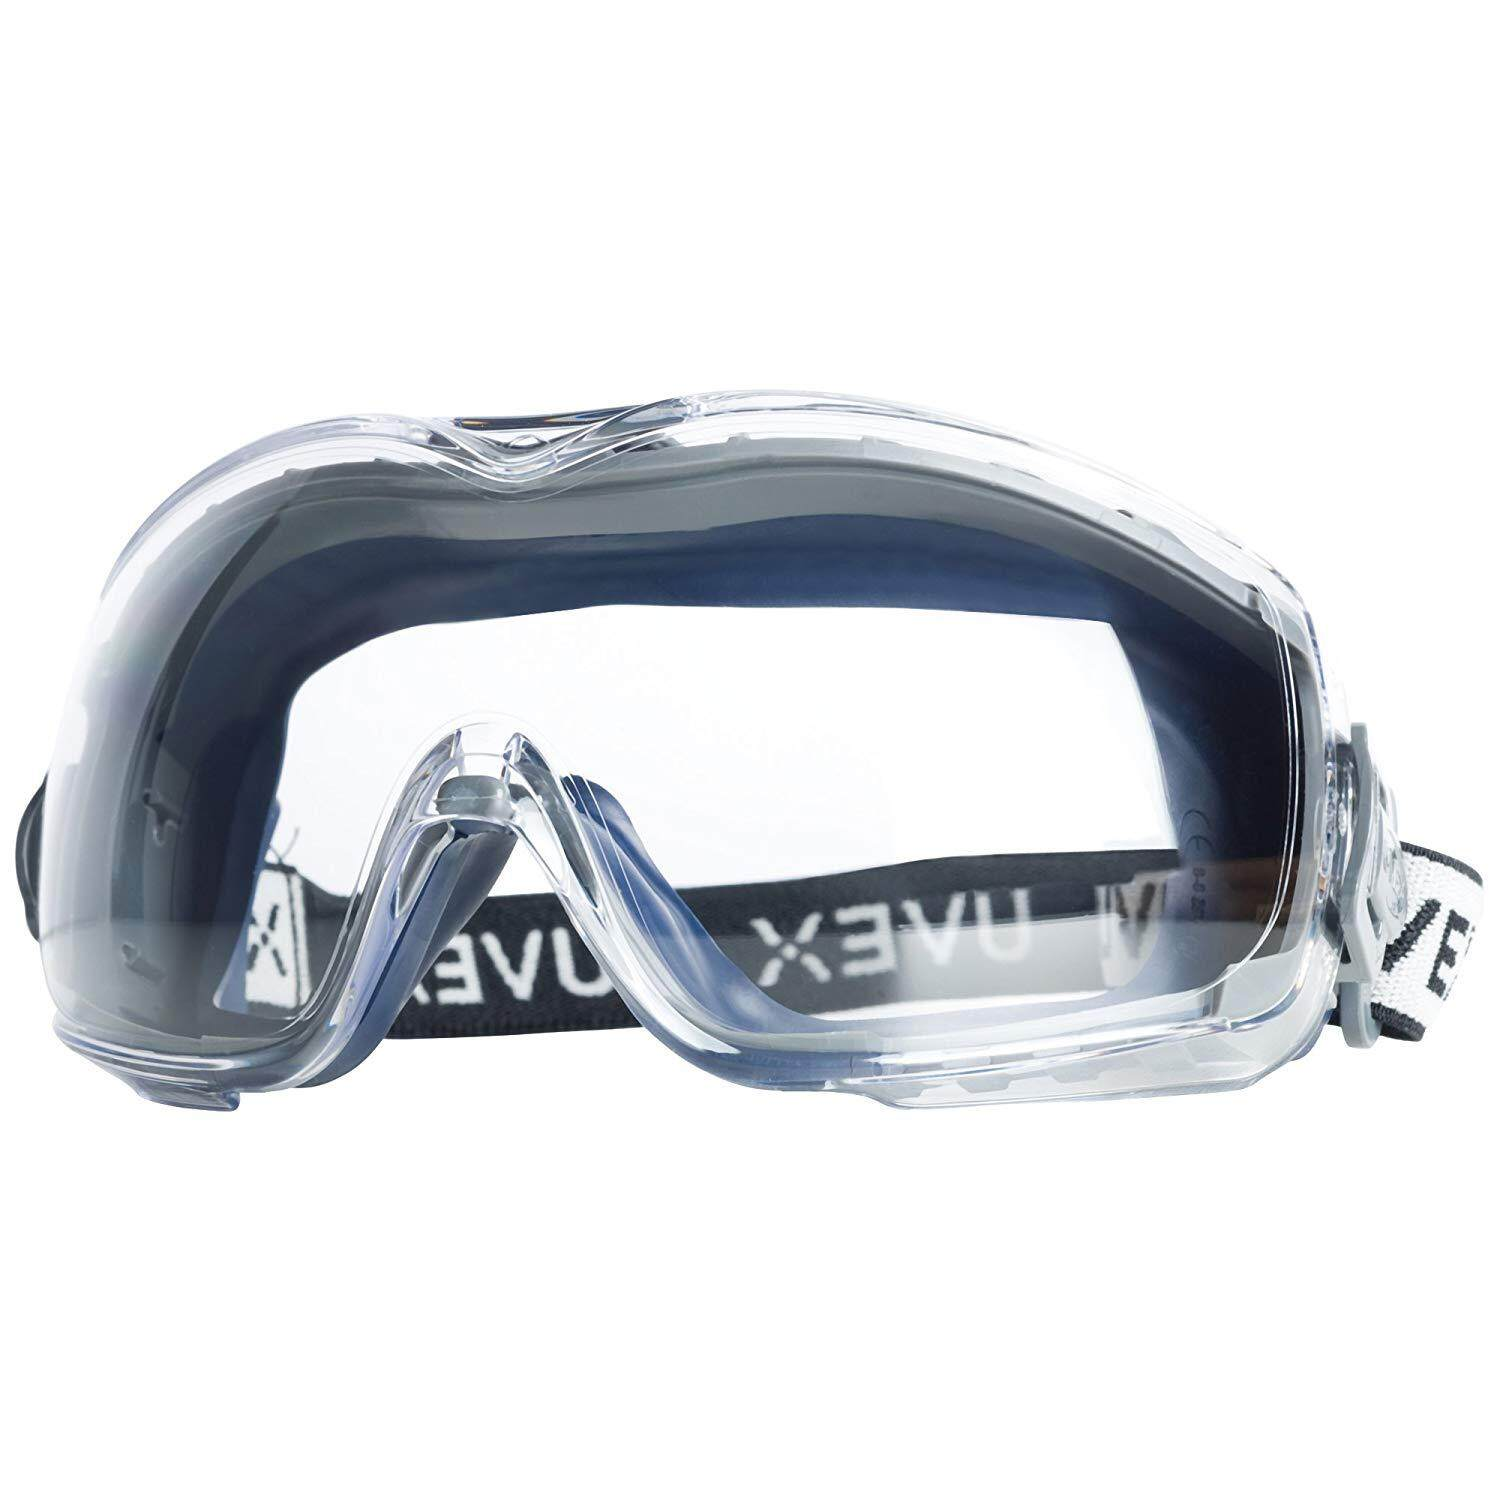 Uvex Stealth OTG Safety Goggles with Anti-Fog/Anti-Scratch Coating (S3970DF) - 19369